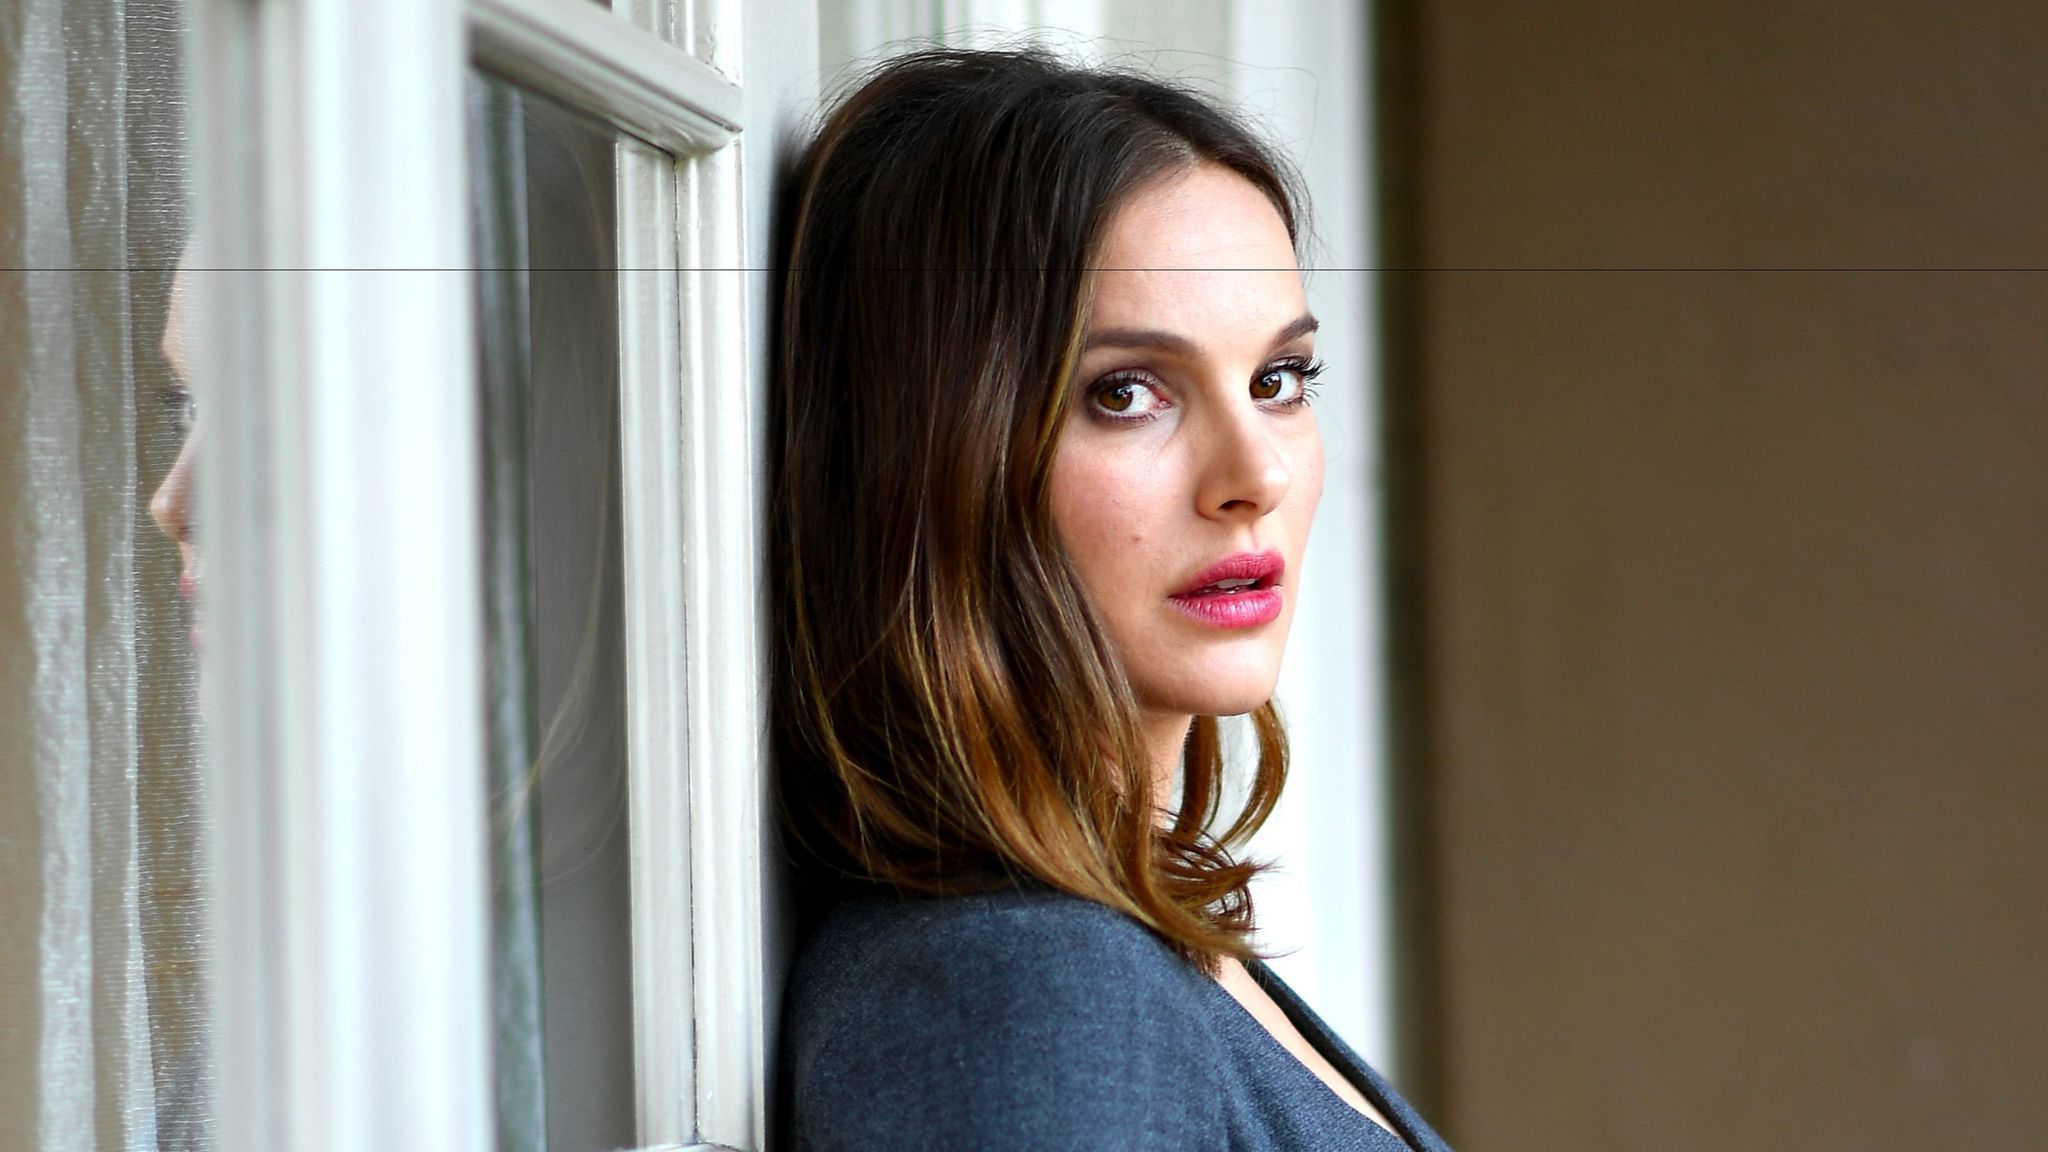 Natalie Portman on getting into the mind-set of the widow Kennedy for 'Jackie'